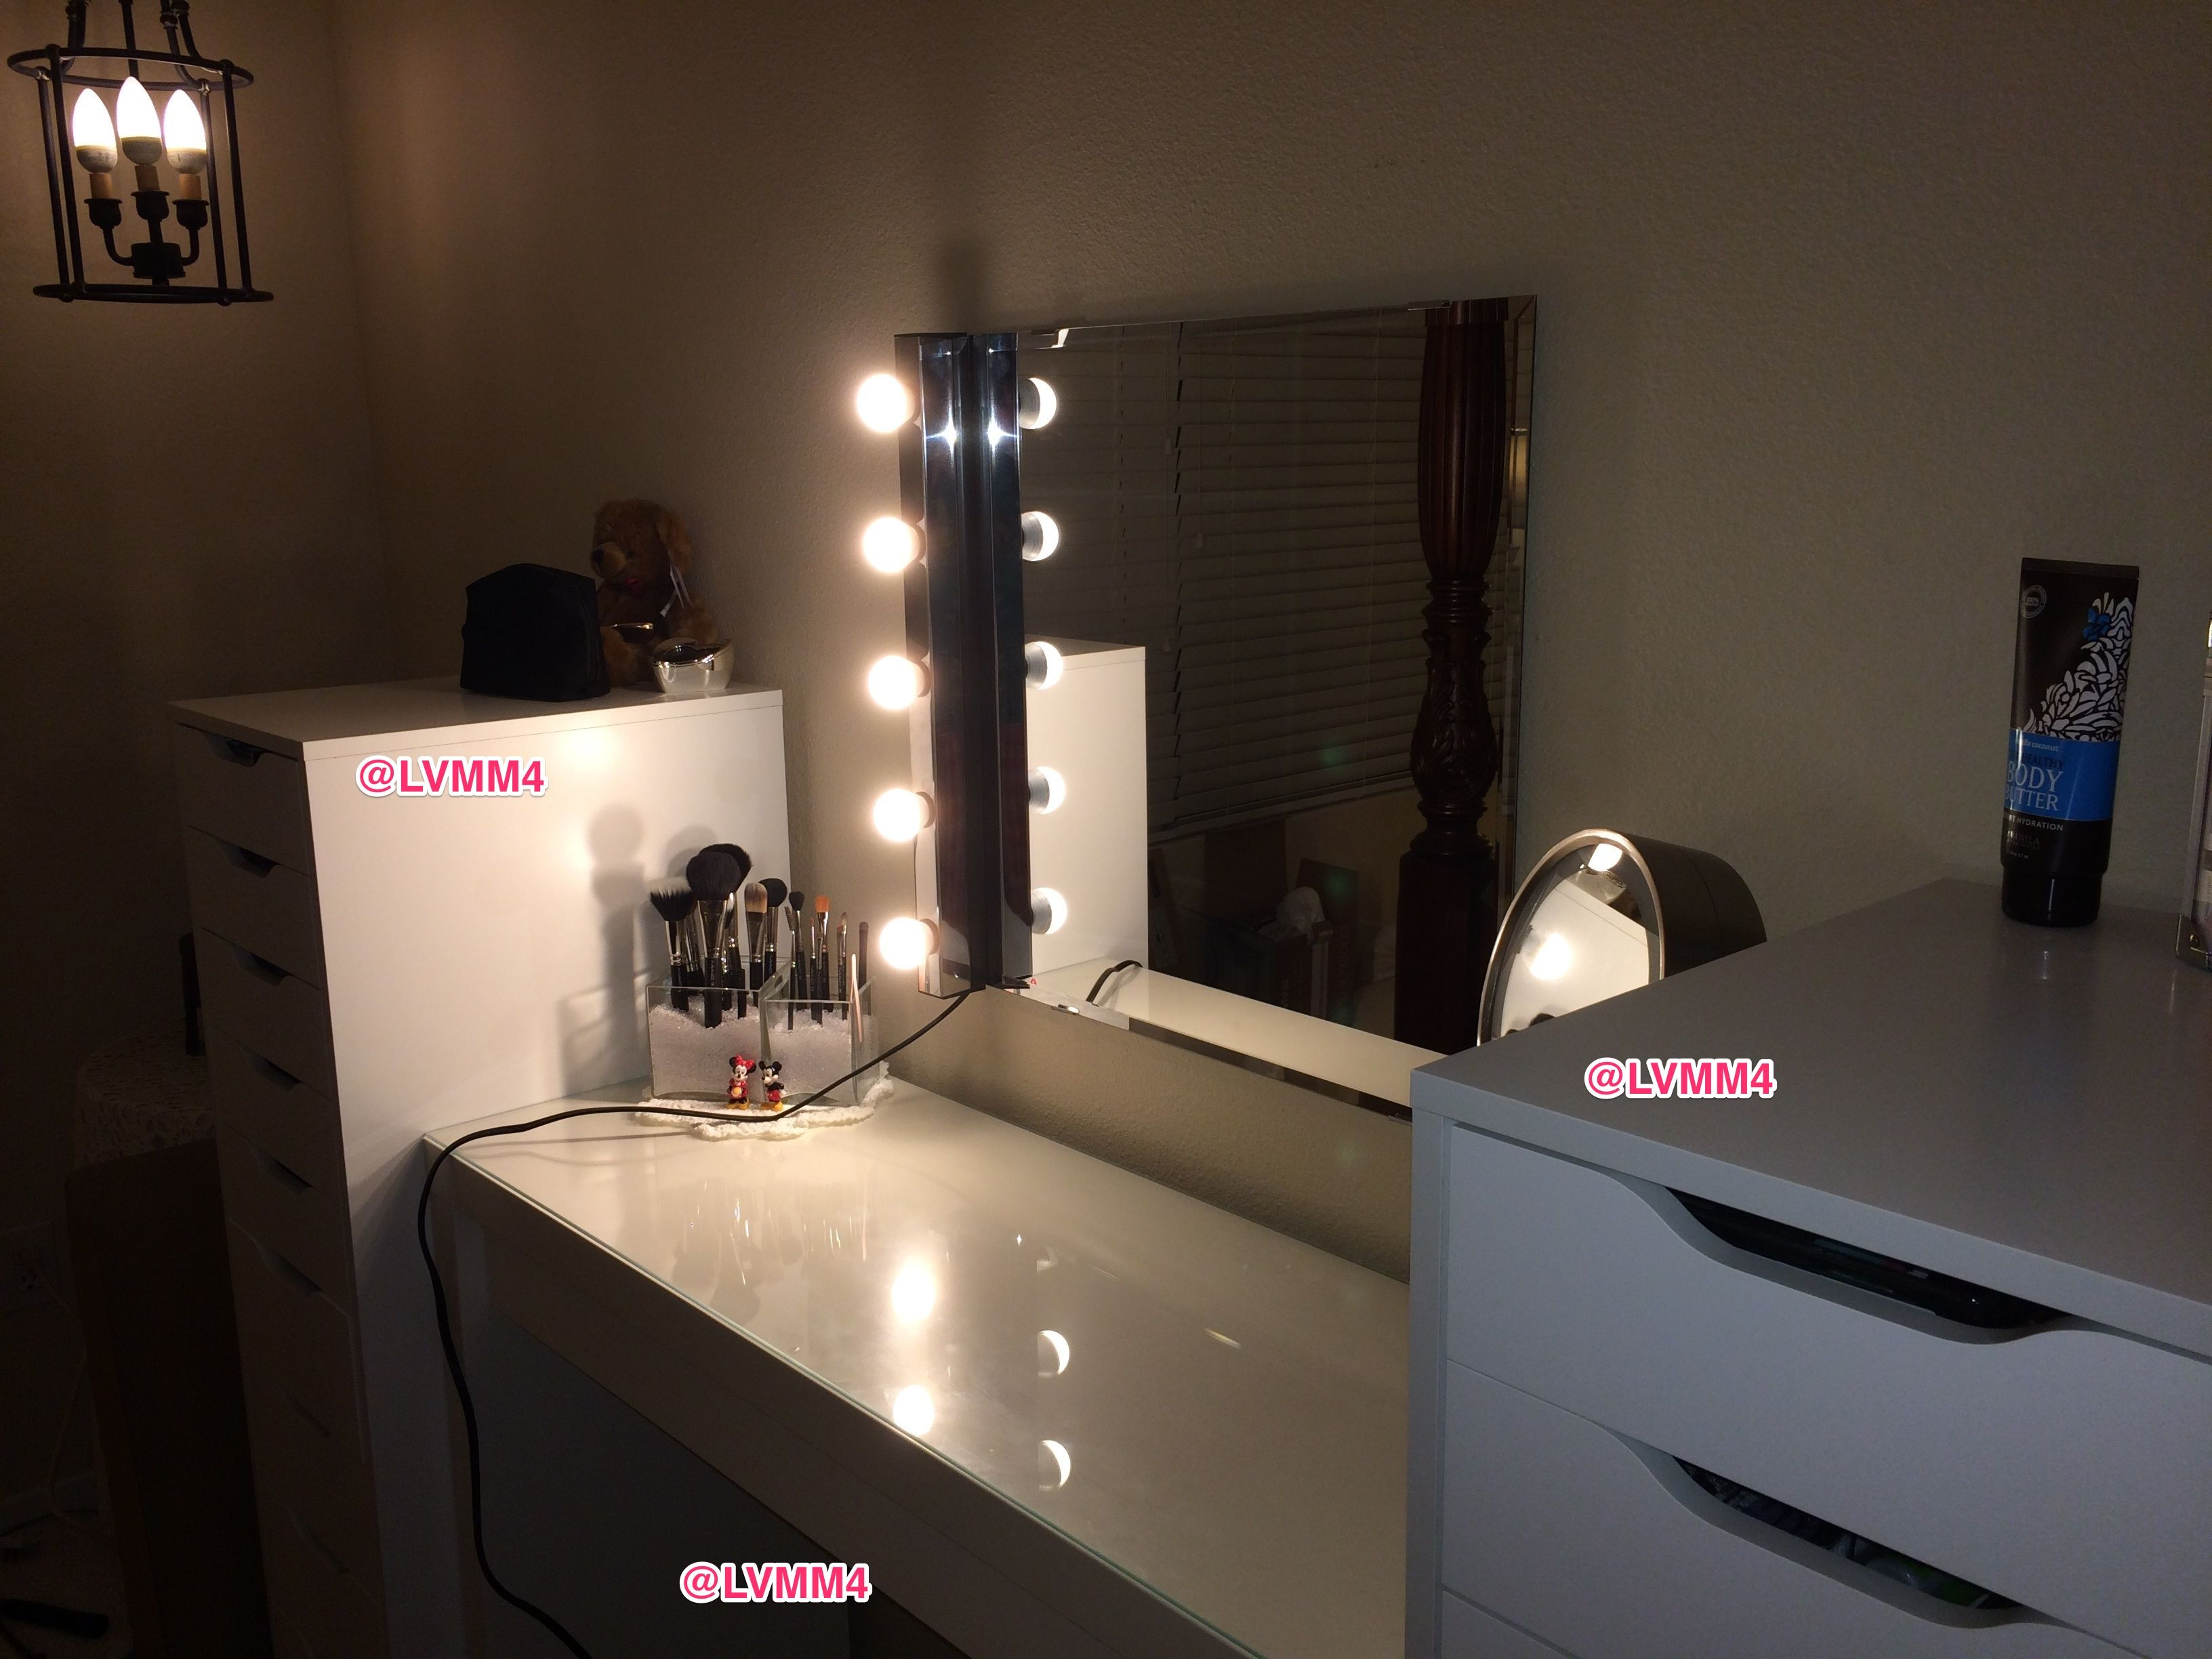 ikea mirror vanity tables with lights table lights ikea mirror  Ikea Mirror  Vanity Tables With. Dressing Table Lights Ikea